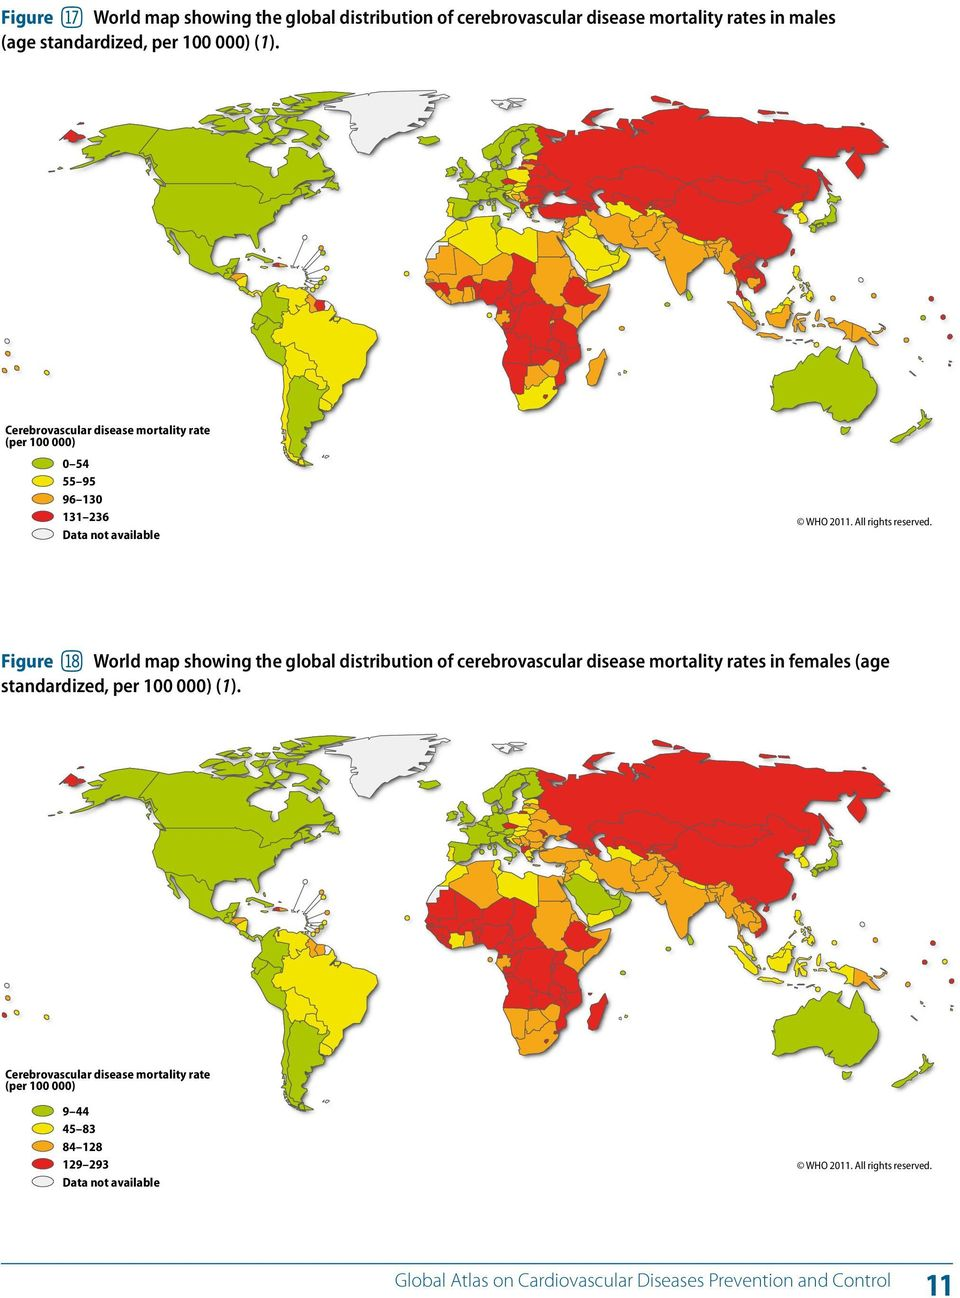 Figure bt World map showing the global distribution of cerebrovascular disease mortality rates in females (age standardized, per 100